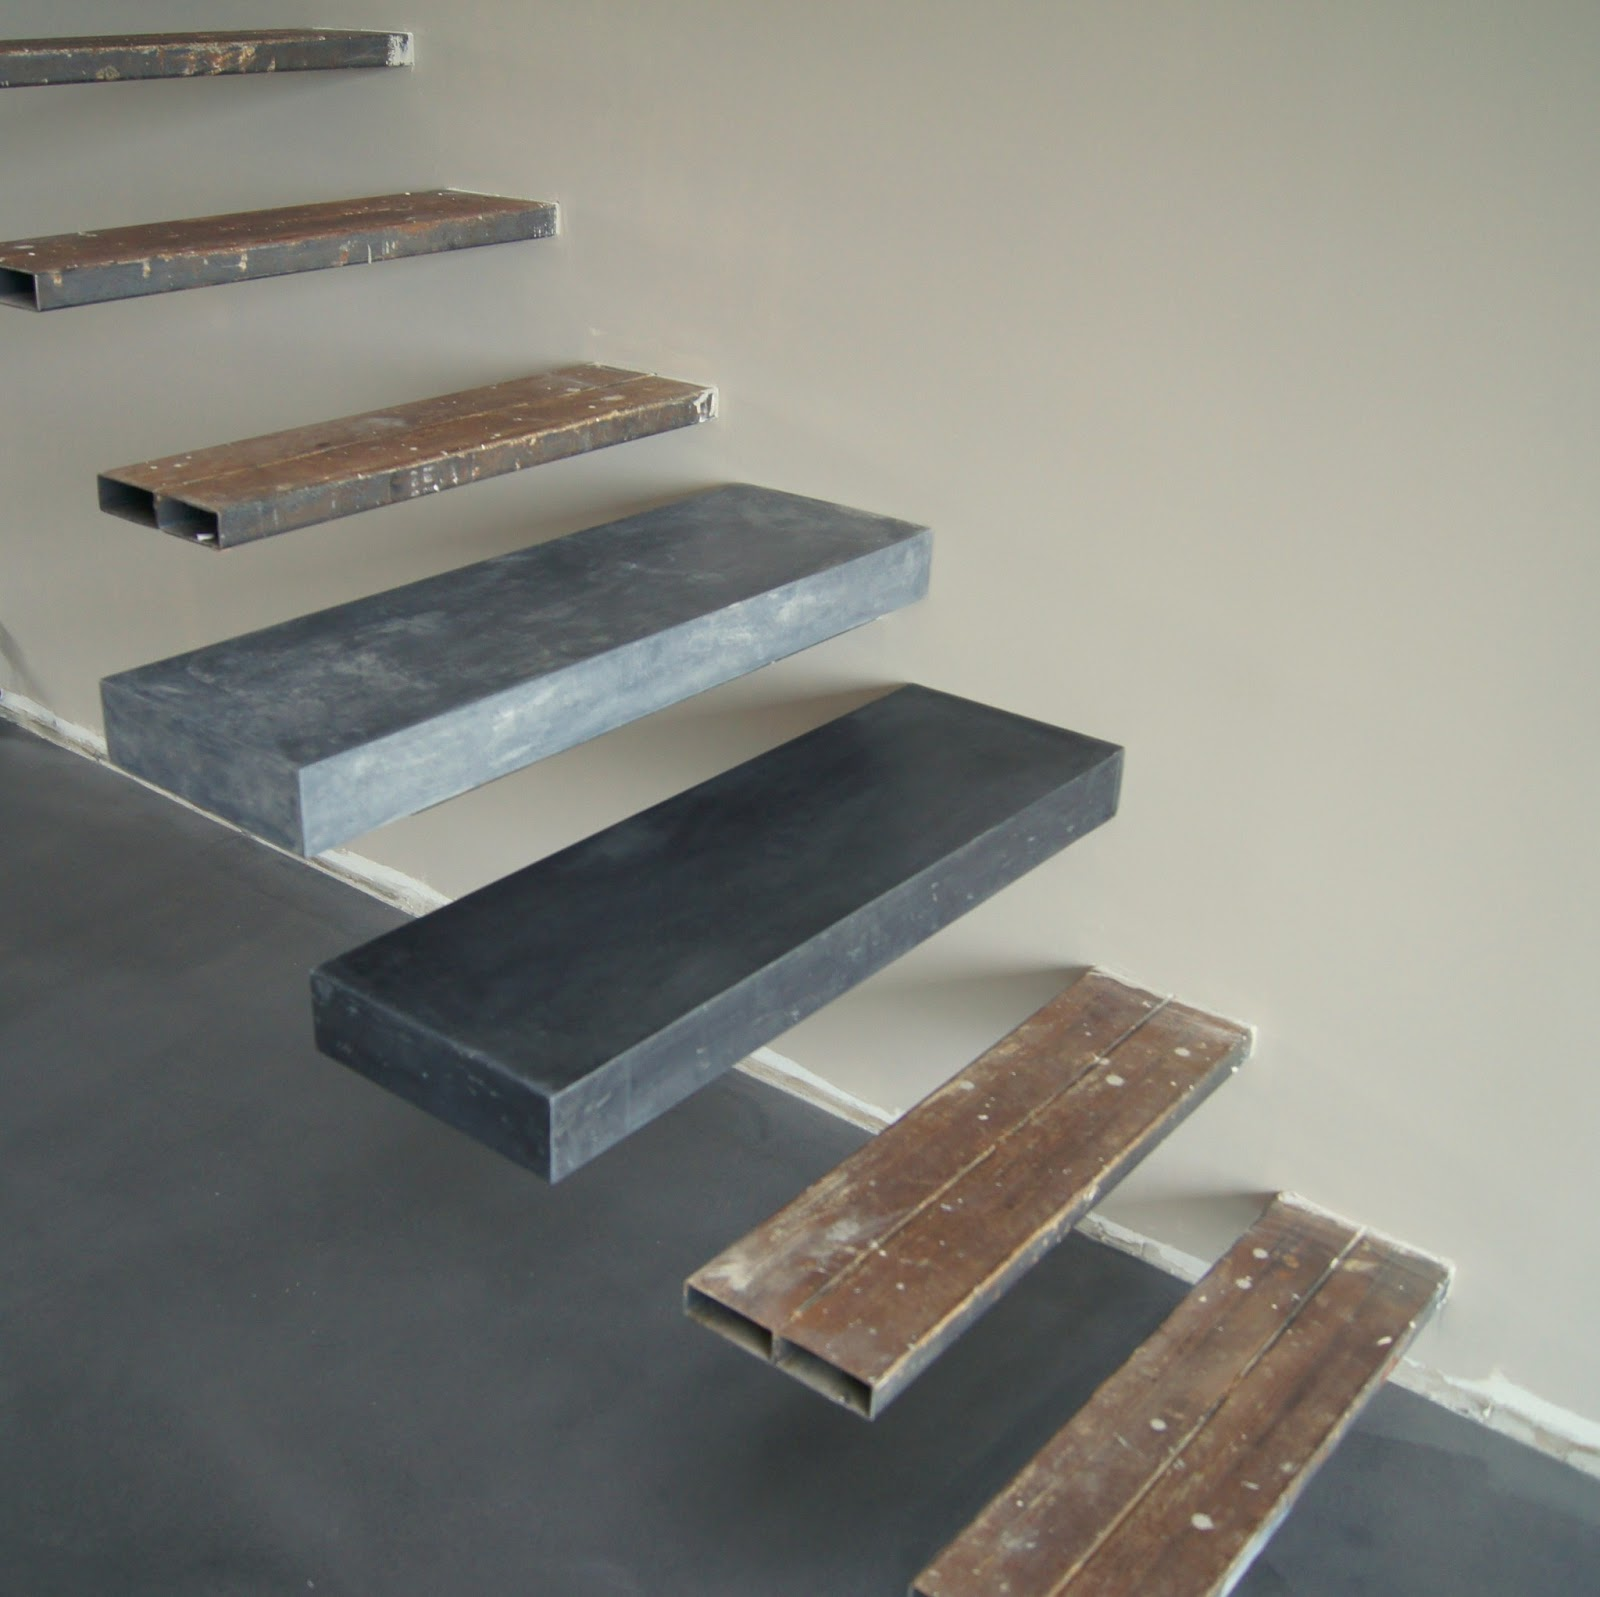 Escalier Design Beton Escalier Design Beton Perfect Ralisation Concrete Design